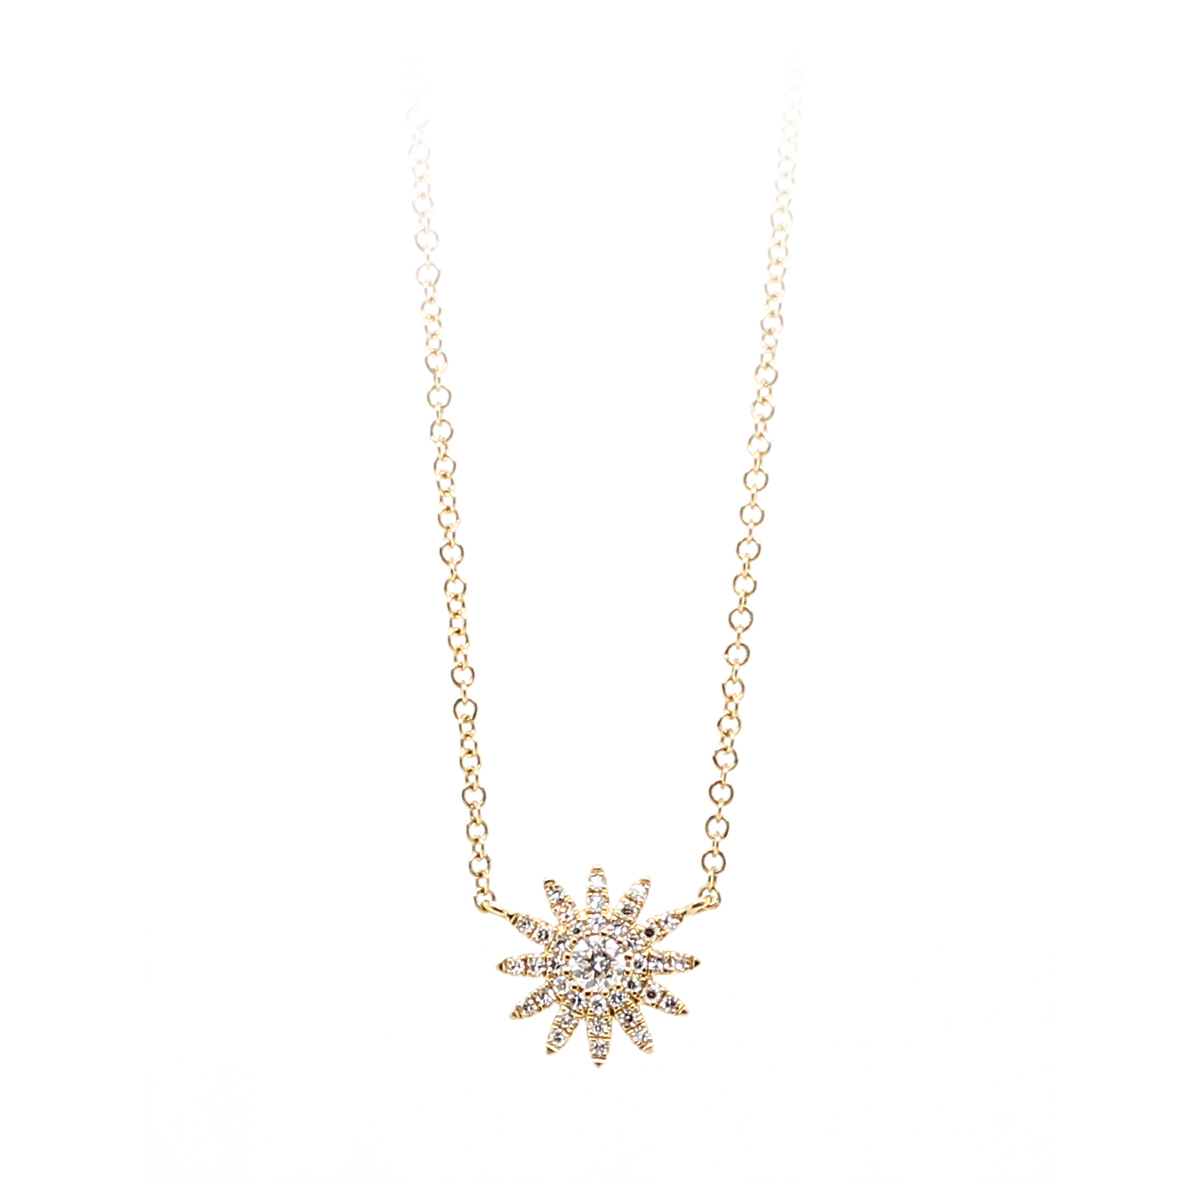 14 Karat Yellow Gold Diamond Starburst Necklace